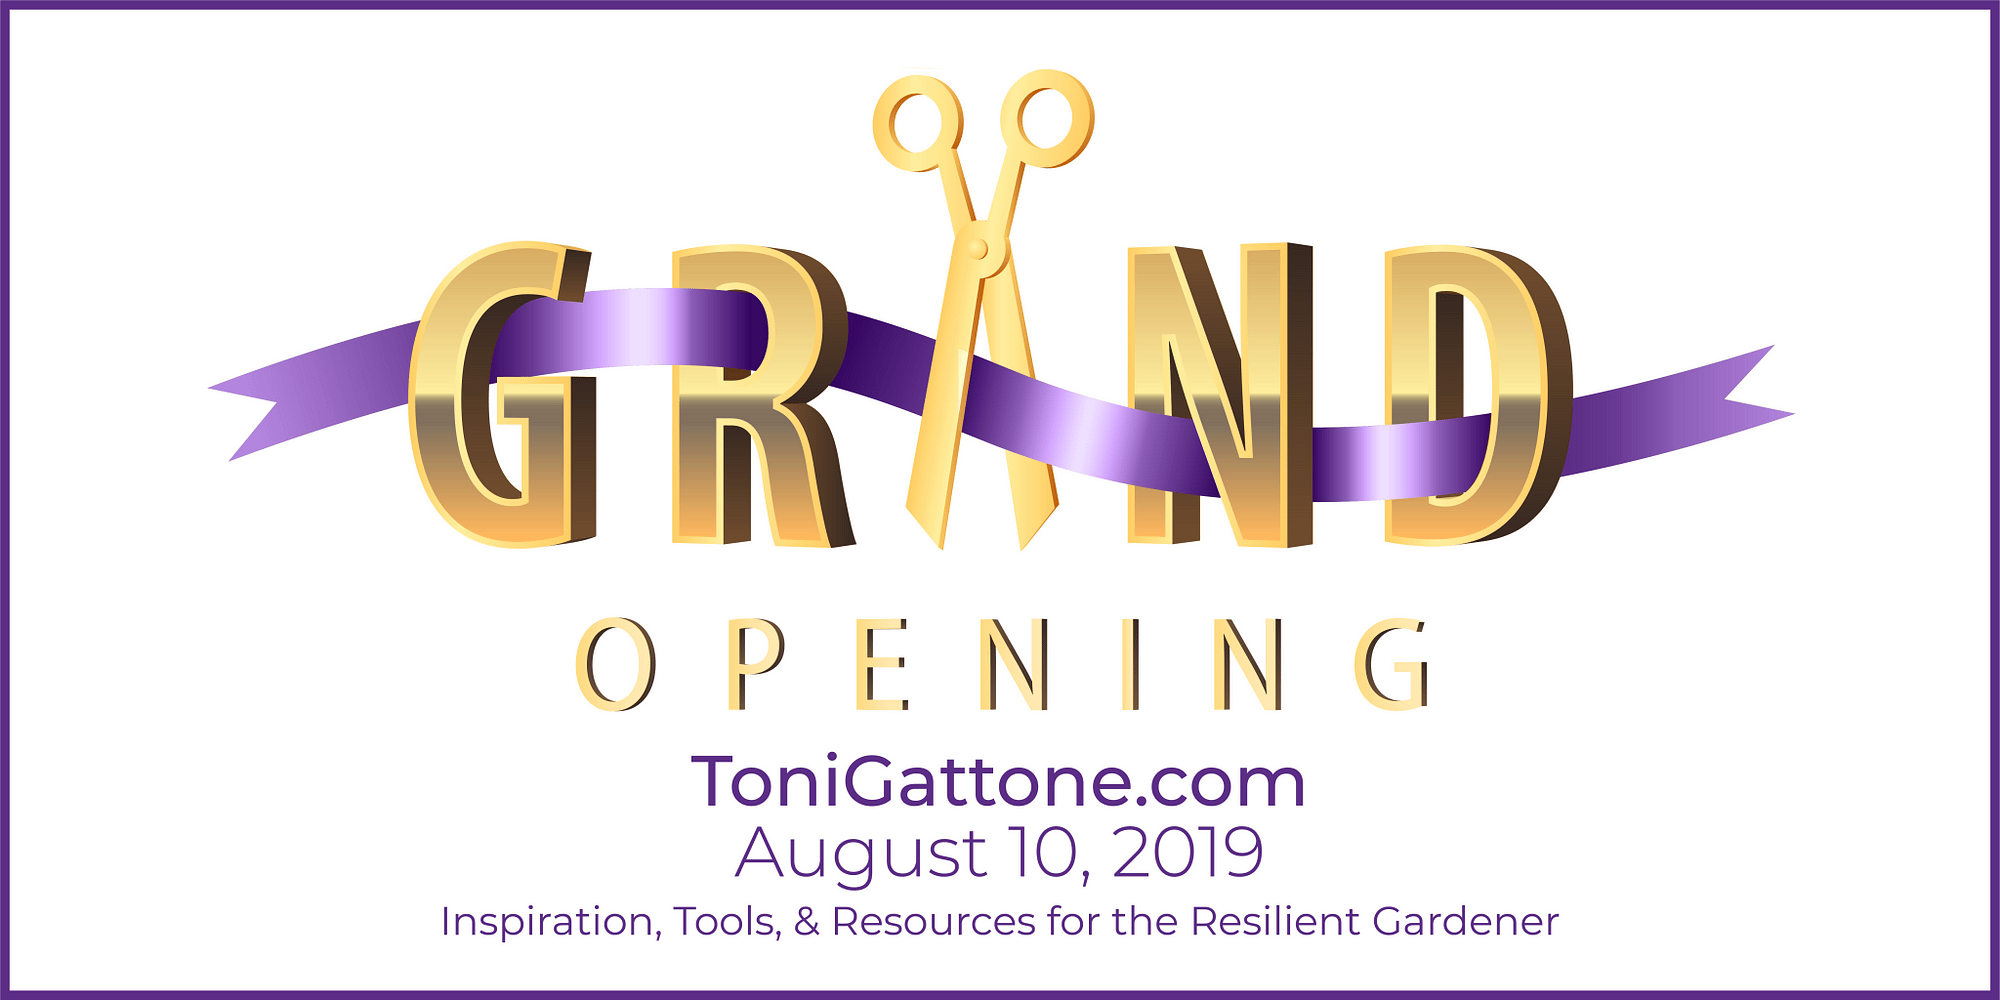 Virtual ribbon cutting and Grand Opening for Toni.Gattone.com , featuring inspiration, tools and resources for the resilient gardener.